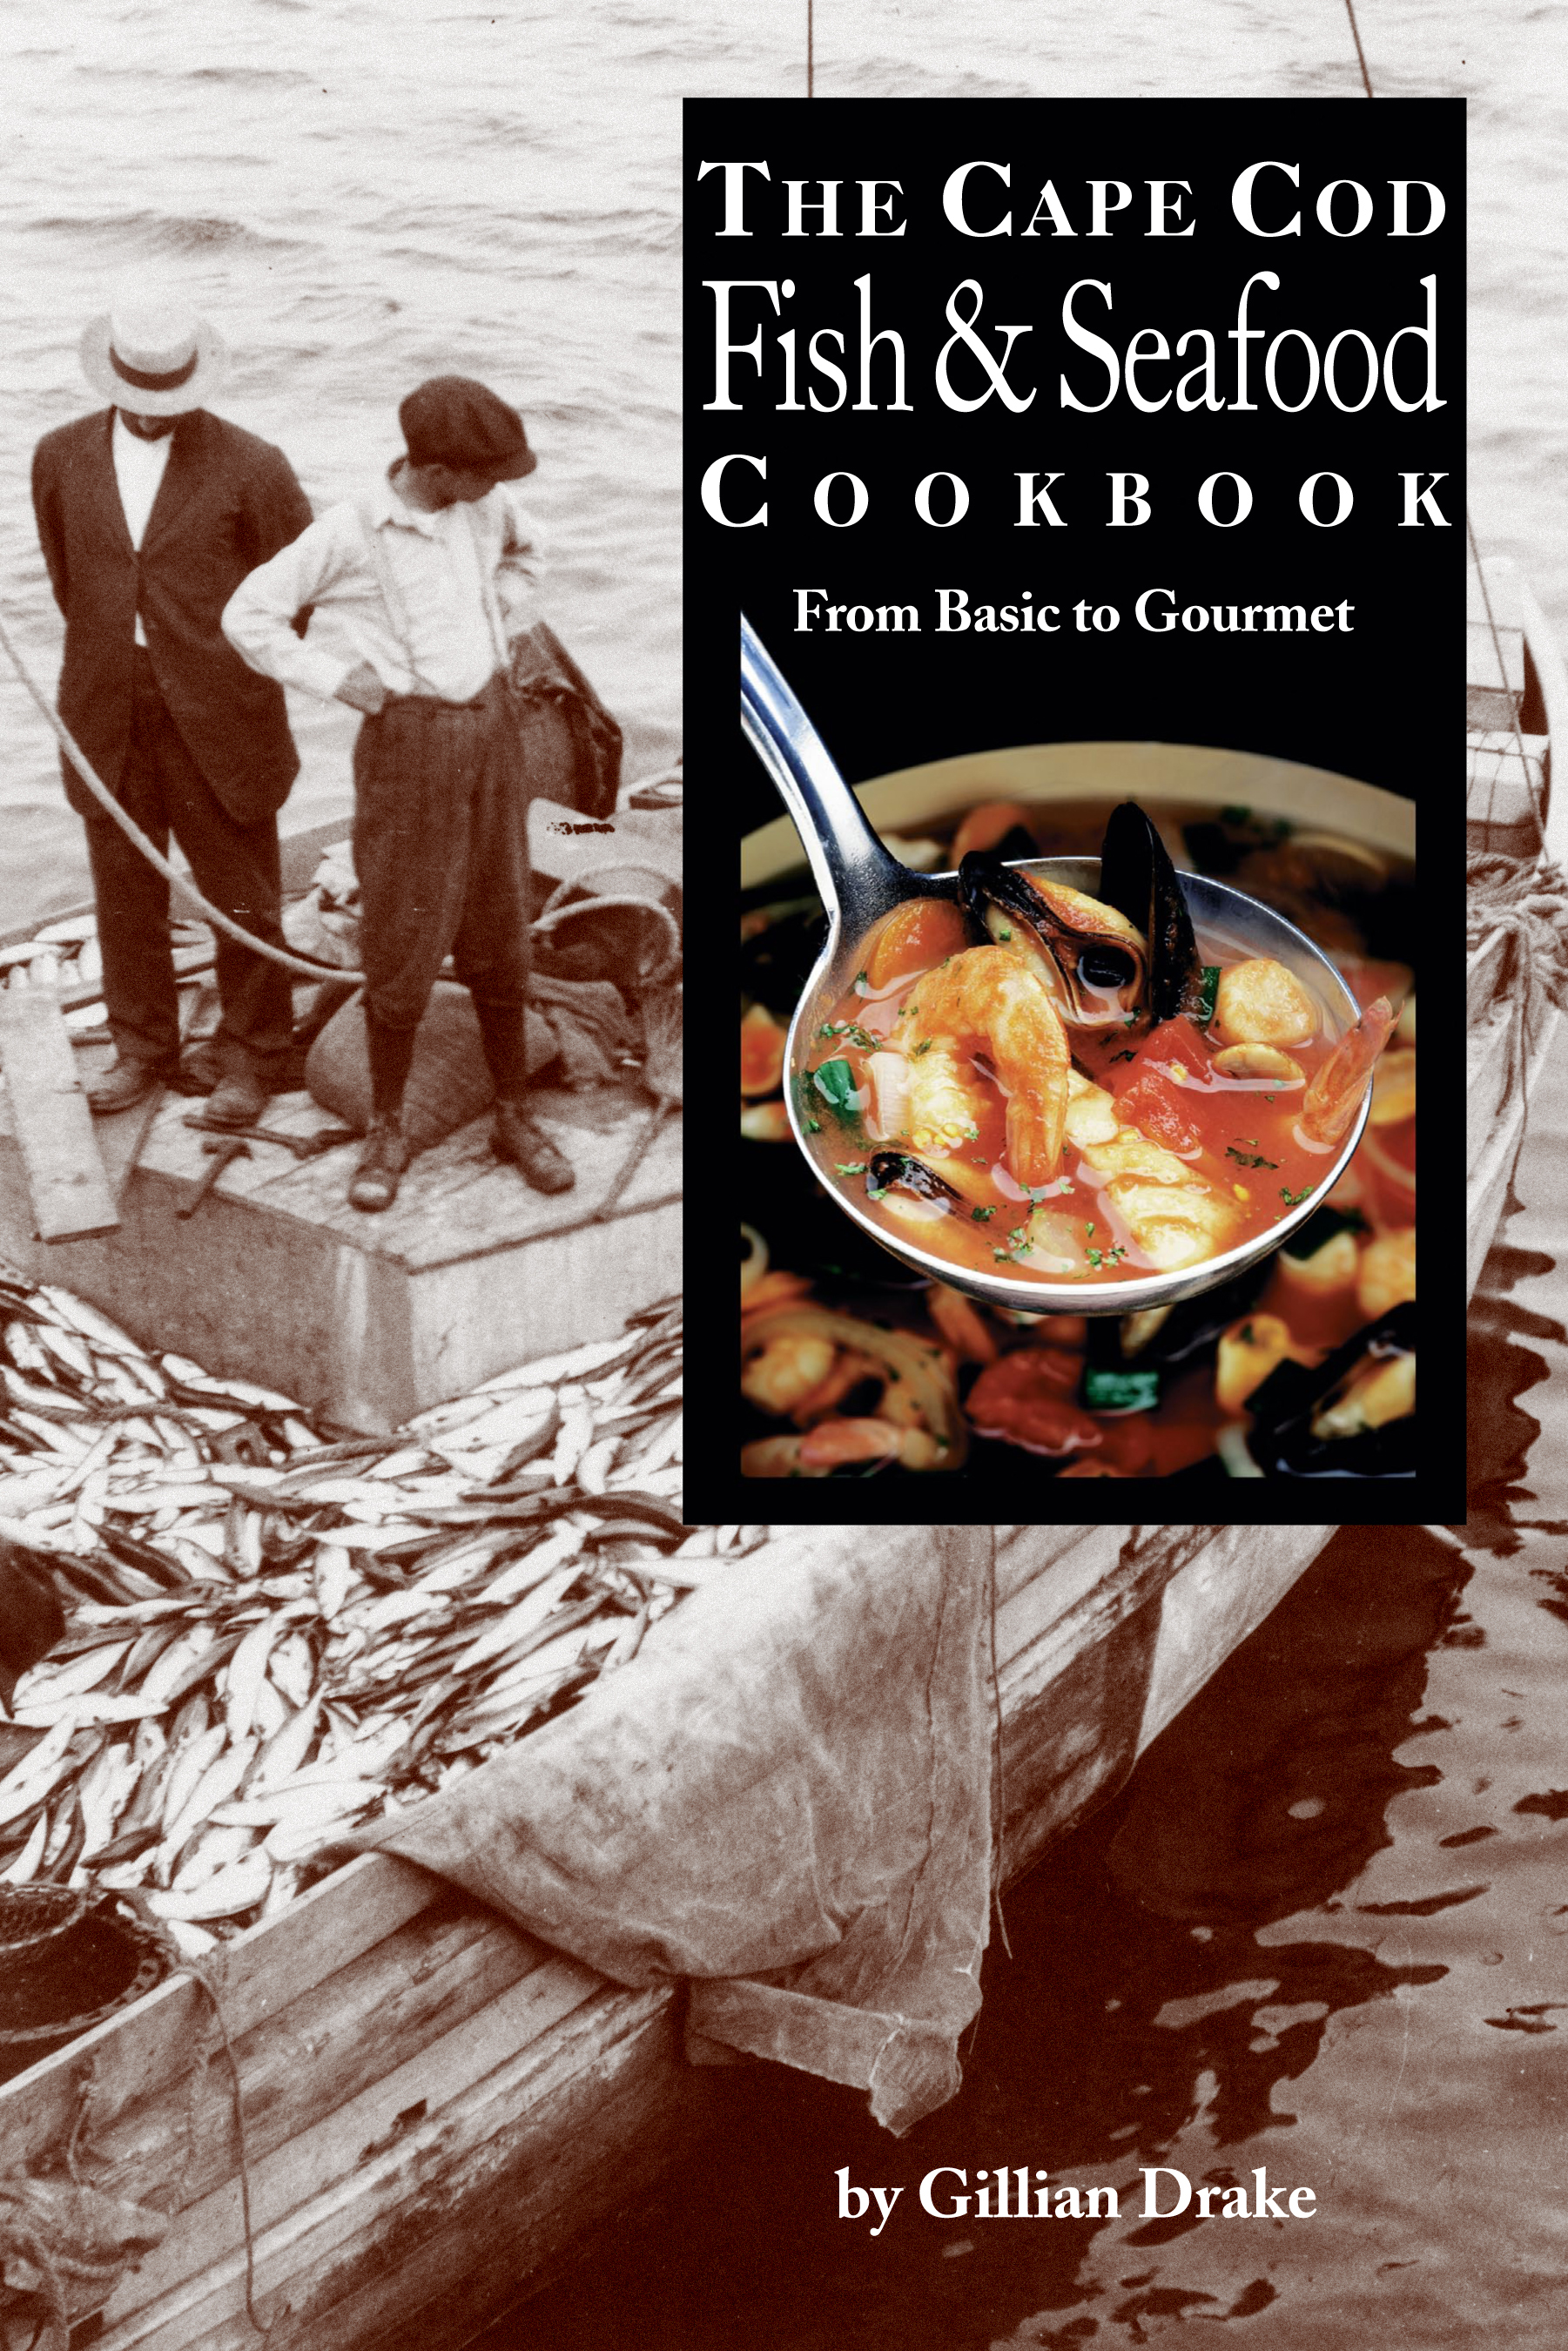 Seafood cookbook FRONT COVER ONLY